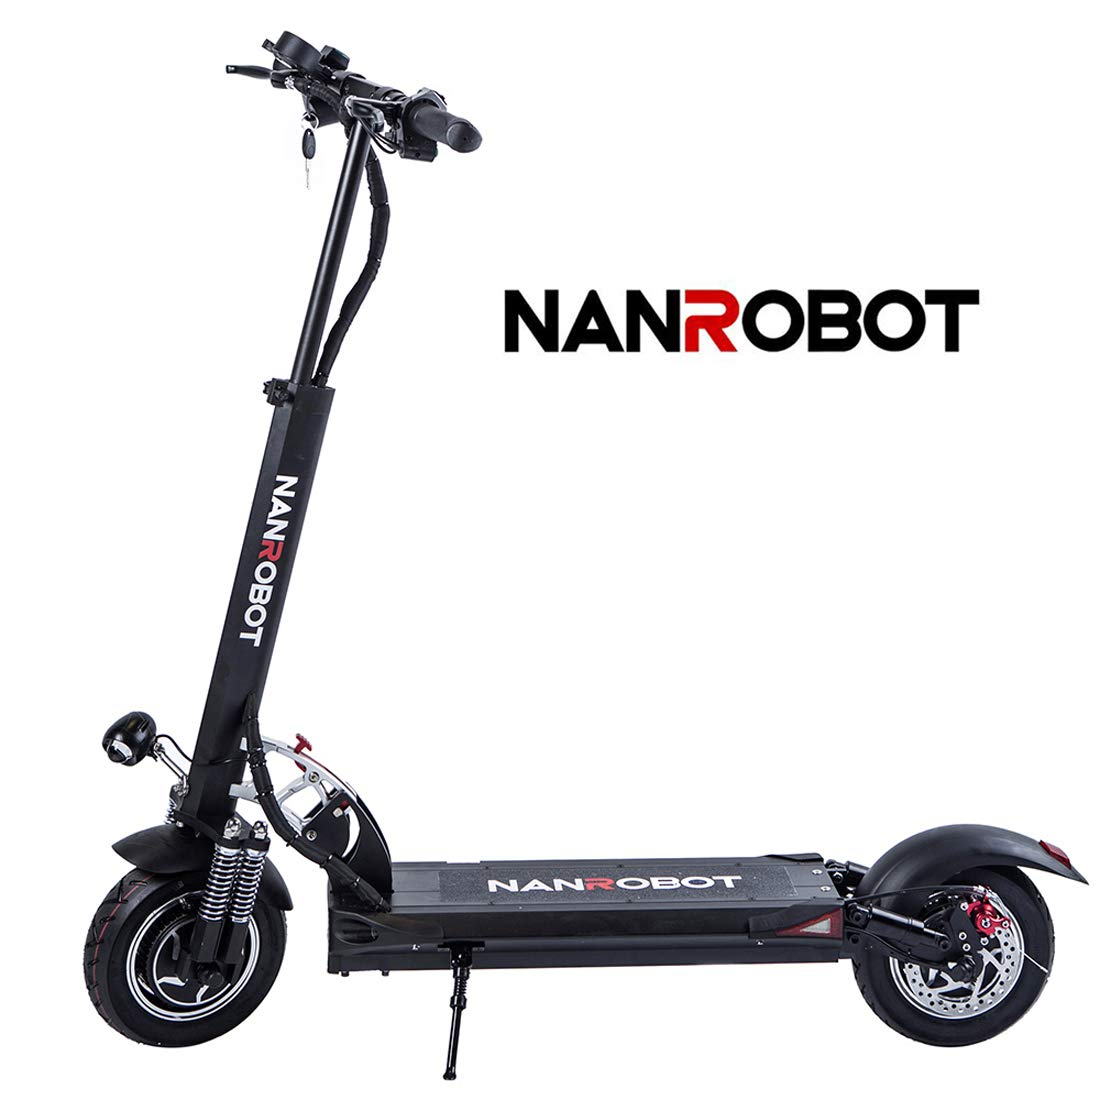 NANROBOT D5+ Powerful Electric Scooter with 2000W Motor Power Allow for 40 MPH Speed, 50 Miles Rang and 330Lb Load (D5+2.0)